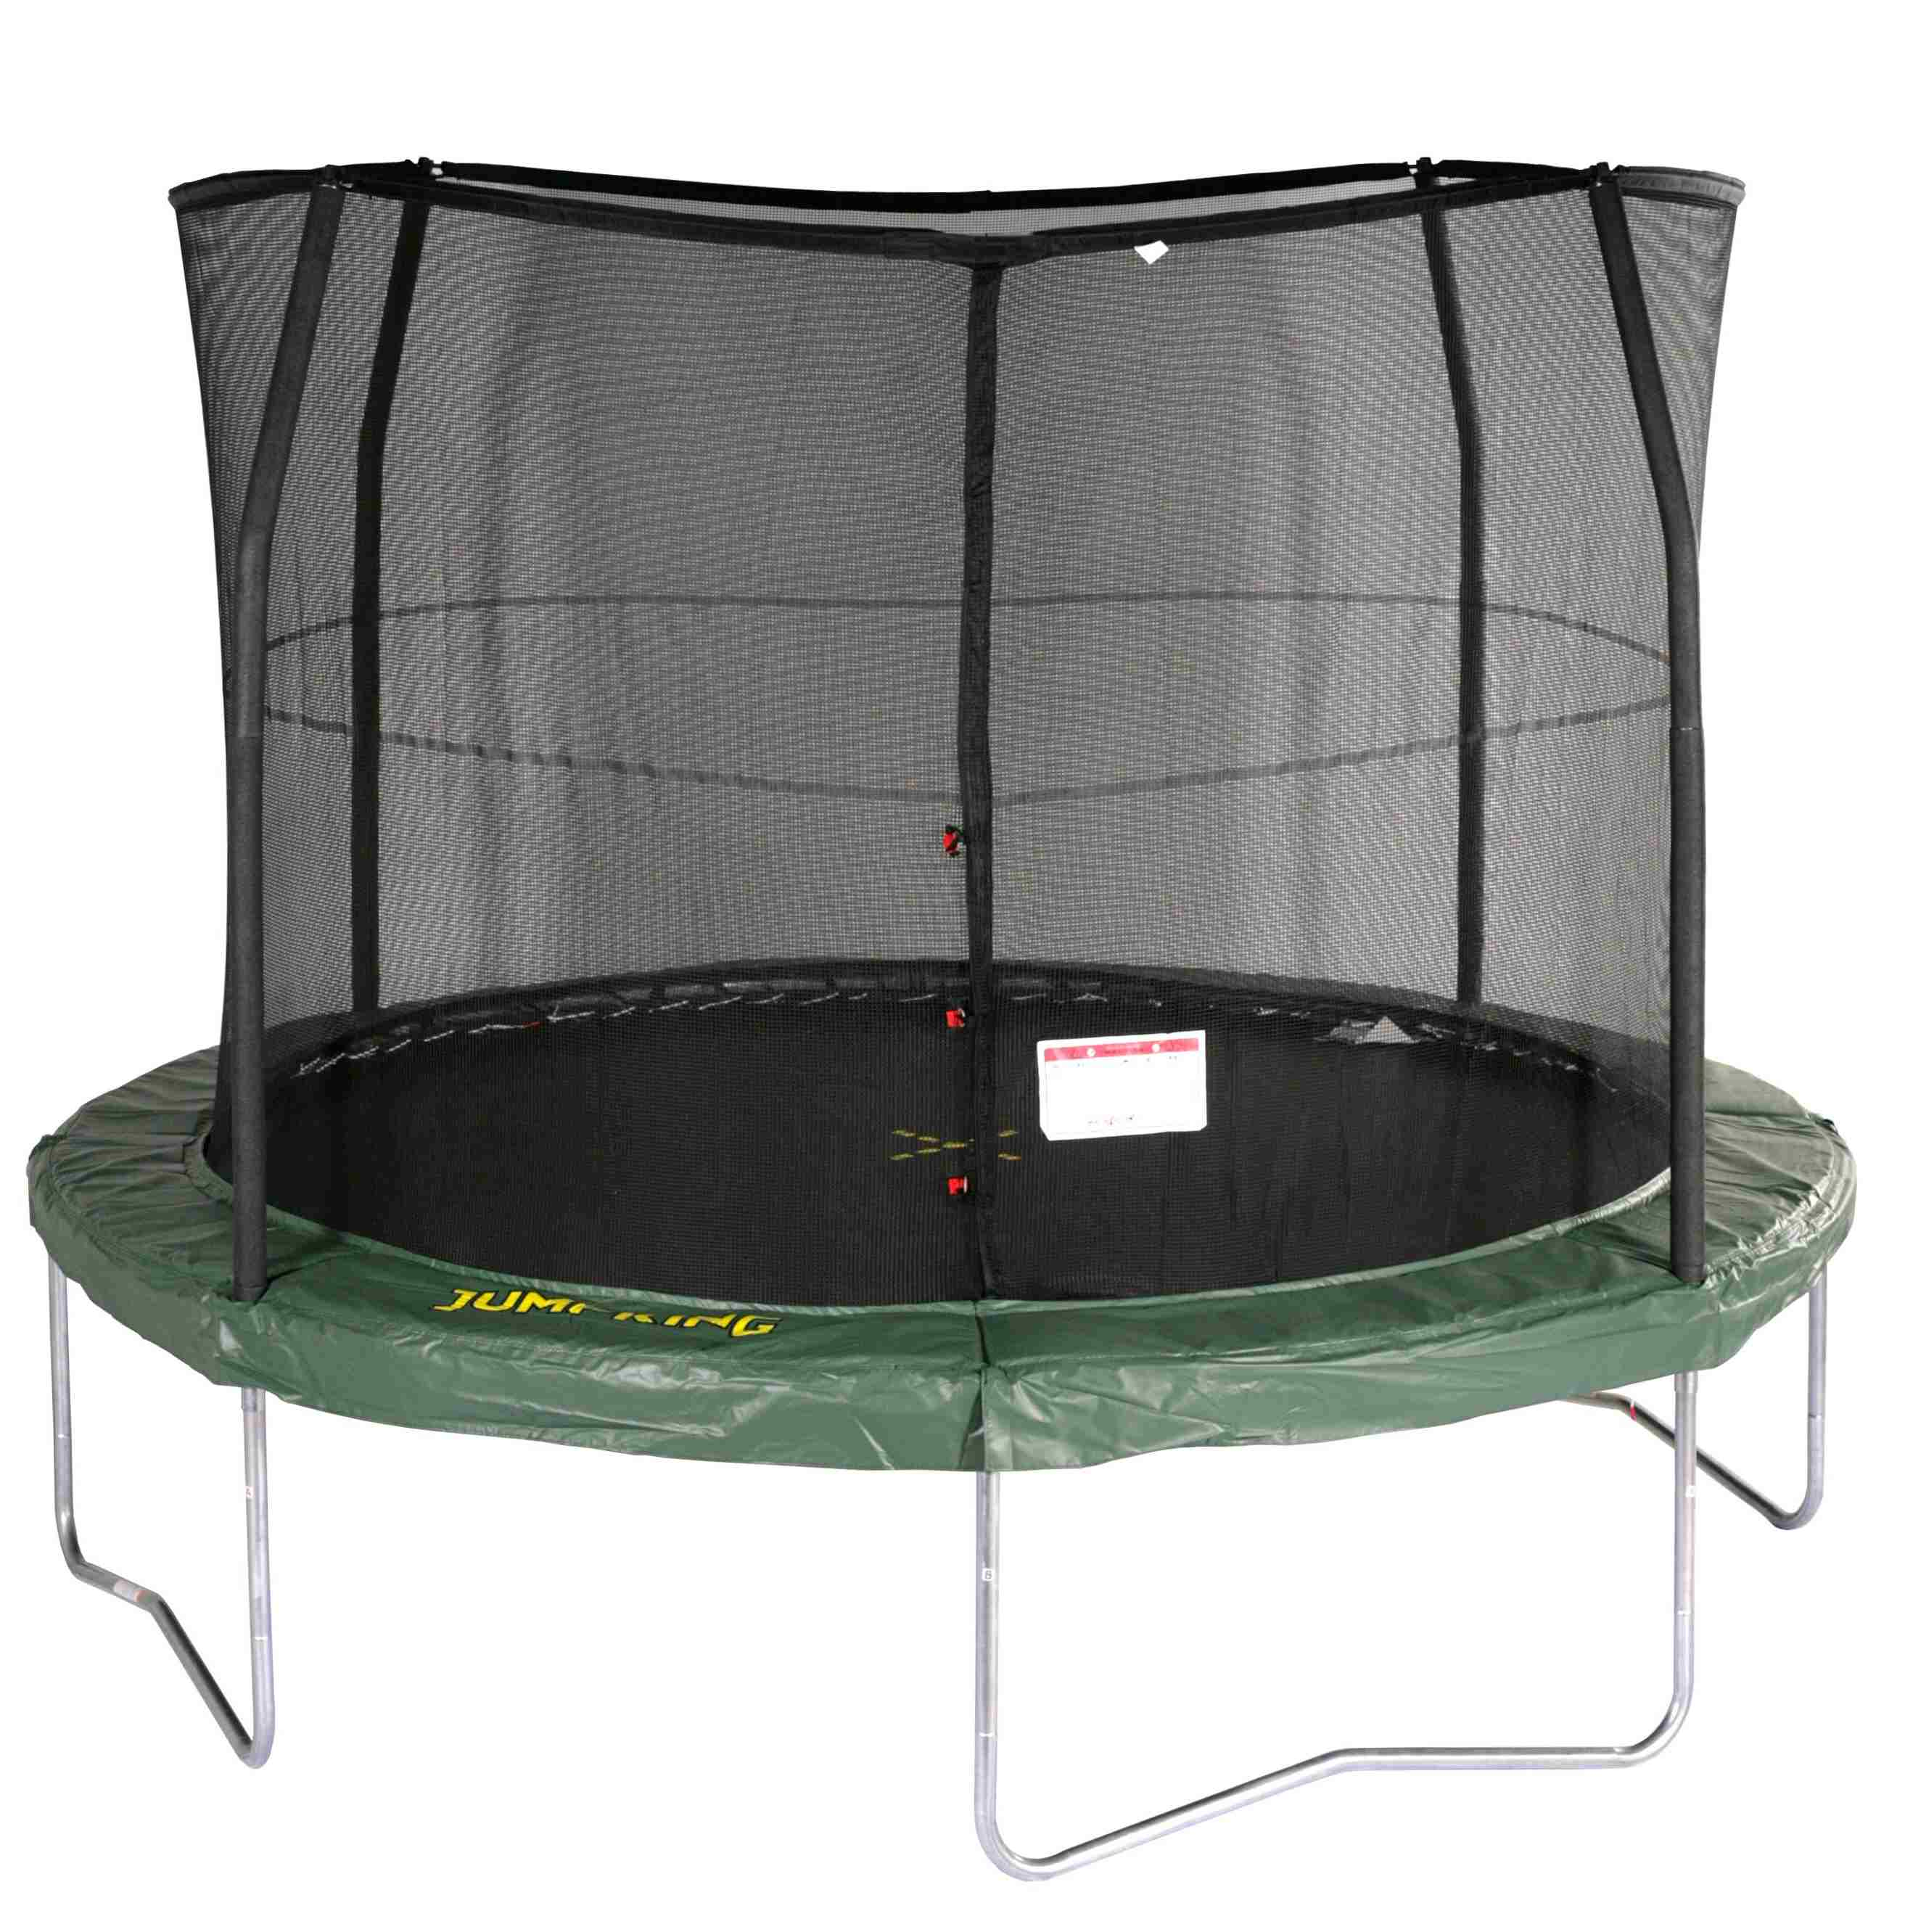 Jumpking Trampoline Ladder Instructions: Fourteen Foot JumpPOD™ Trampoline